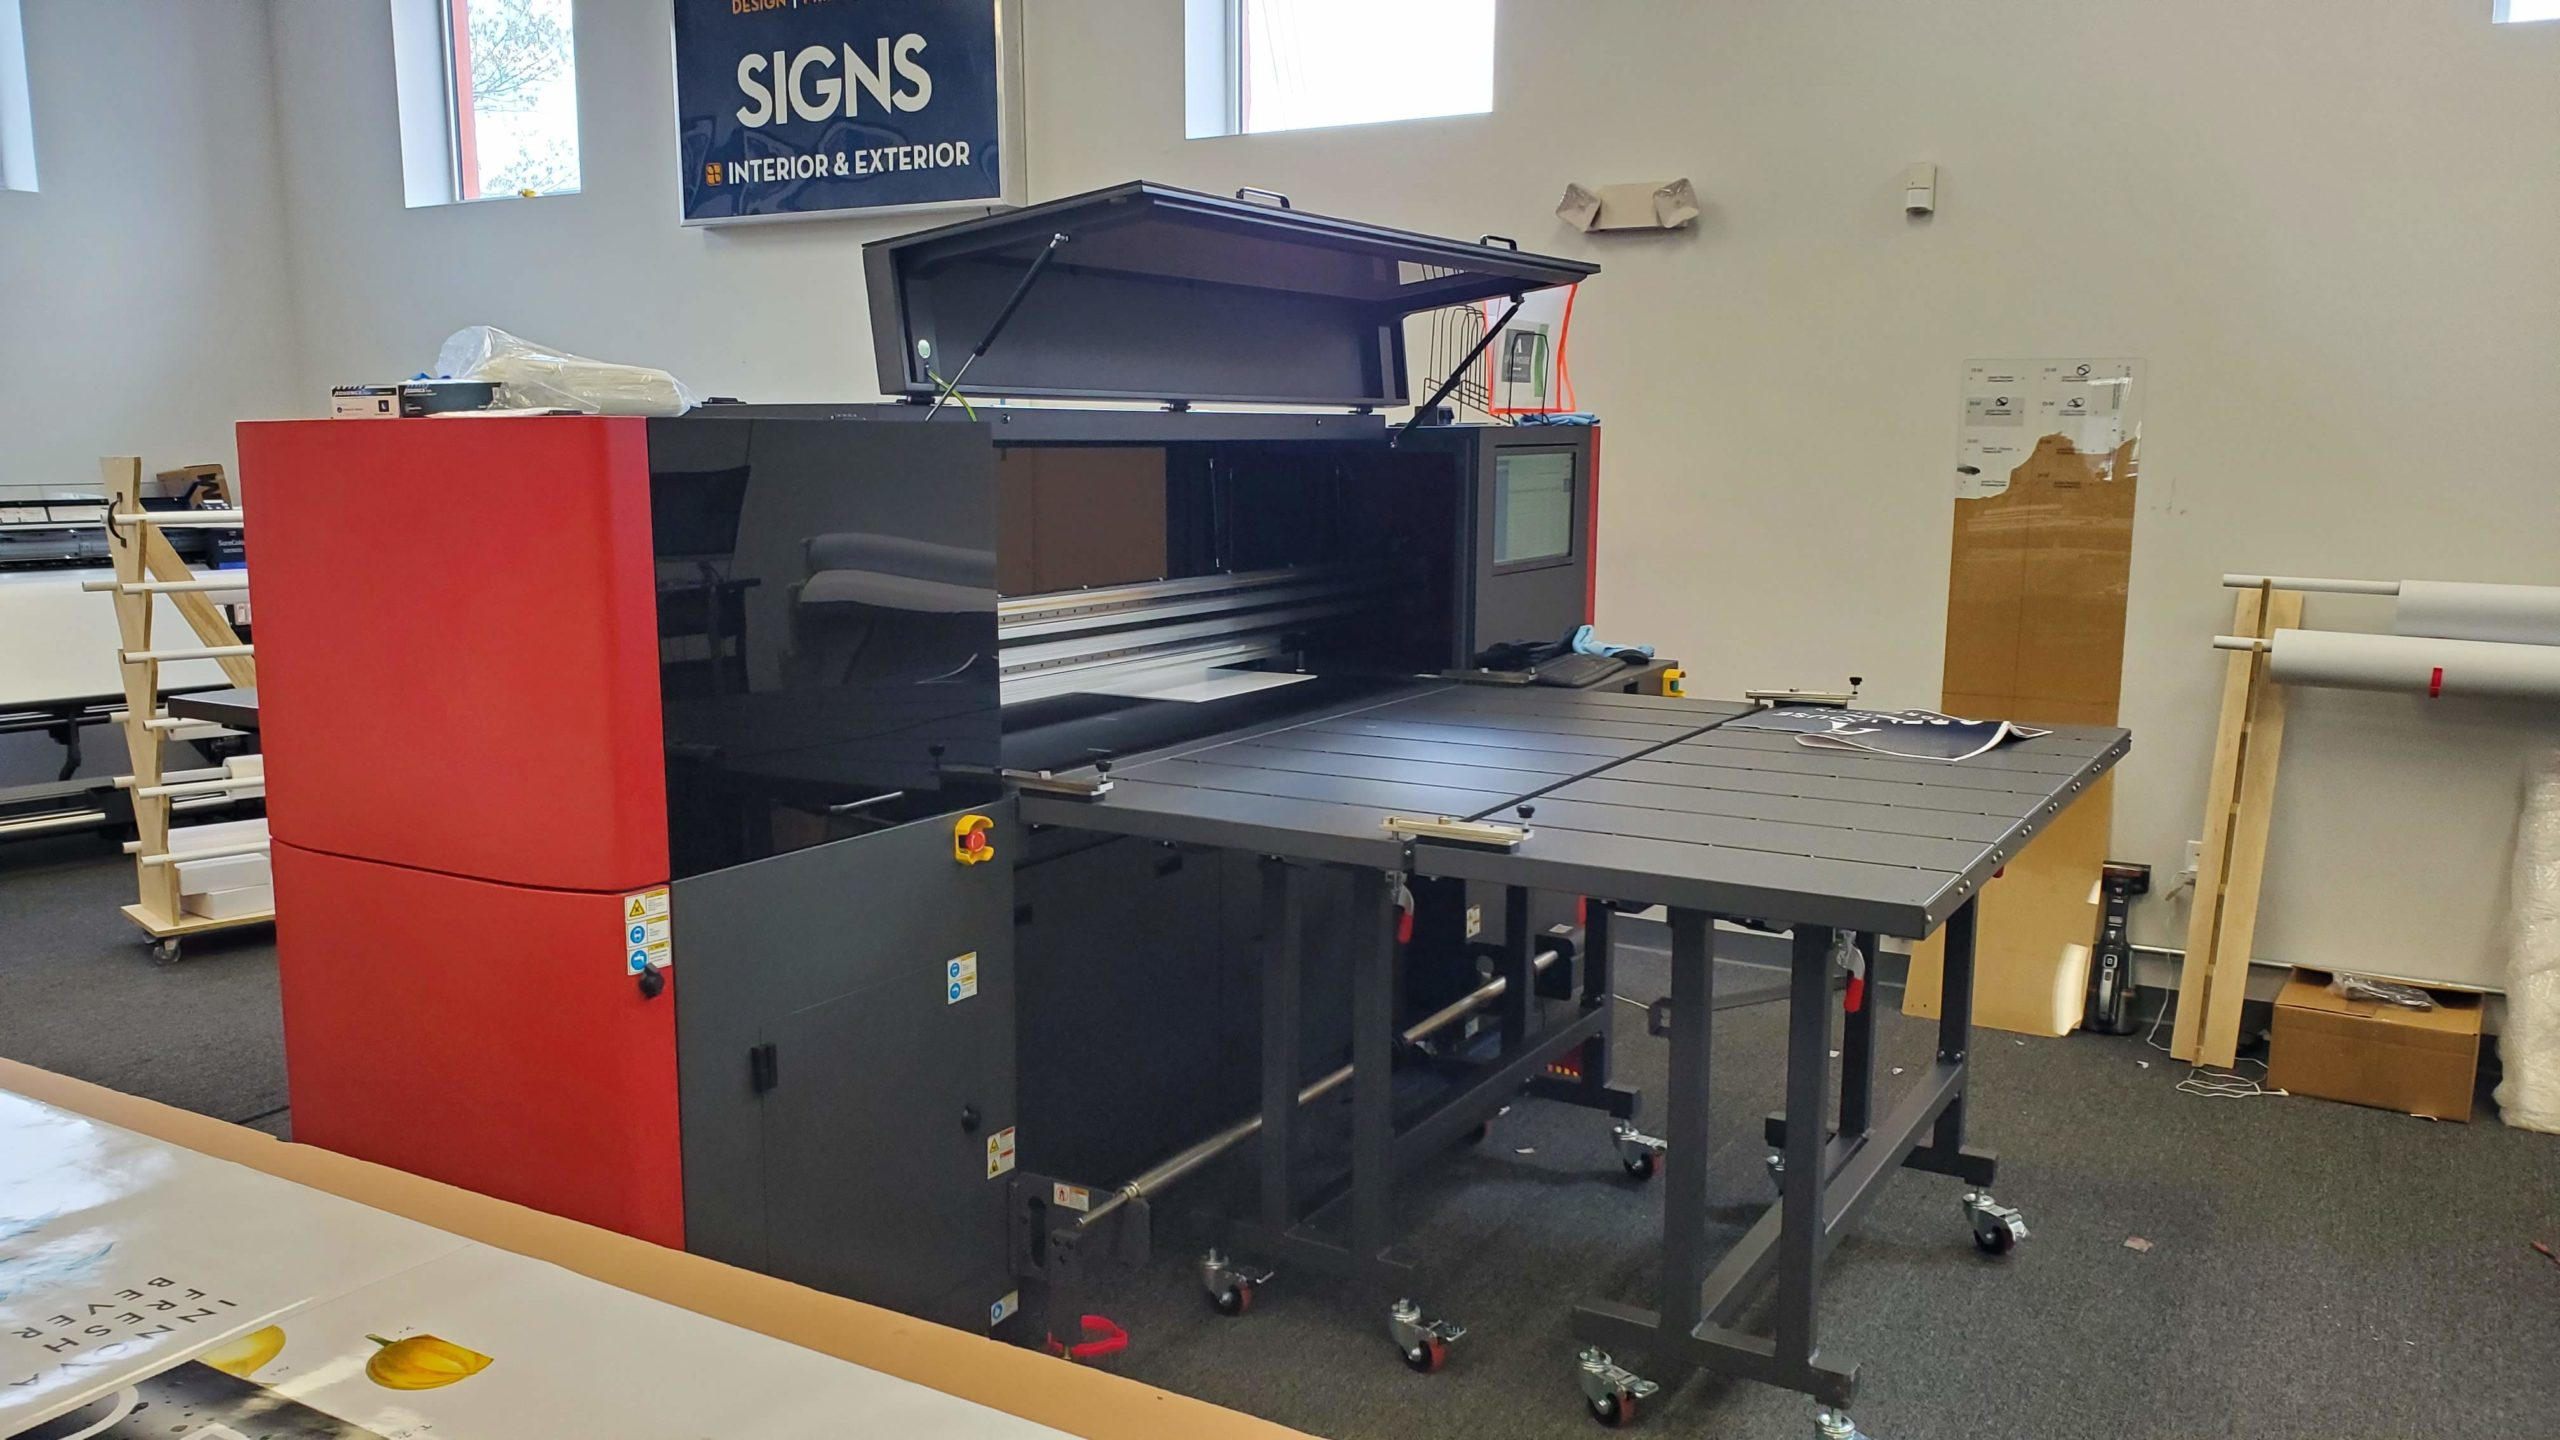 AlphaGraphics Portsmouth purchased an EFI Pro 16h UV LED wide format printer to bolster the services that the premier marketing and printing shop offers